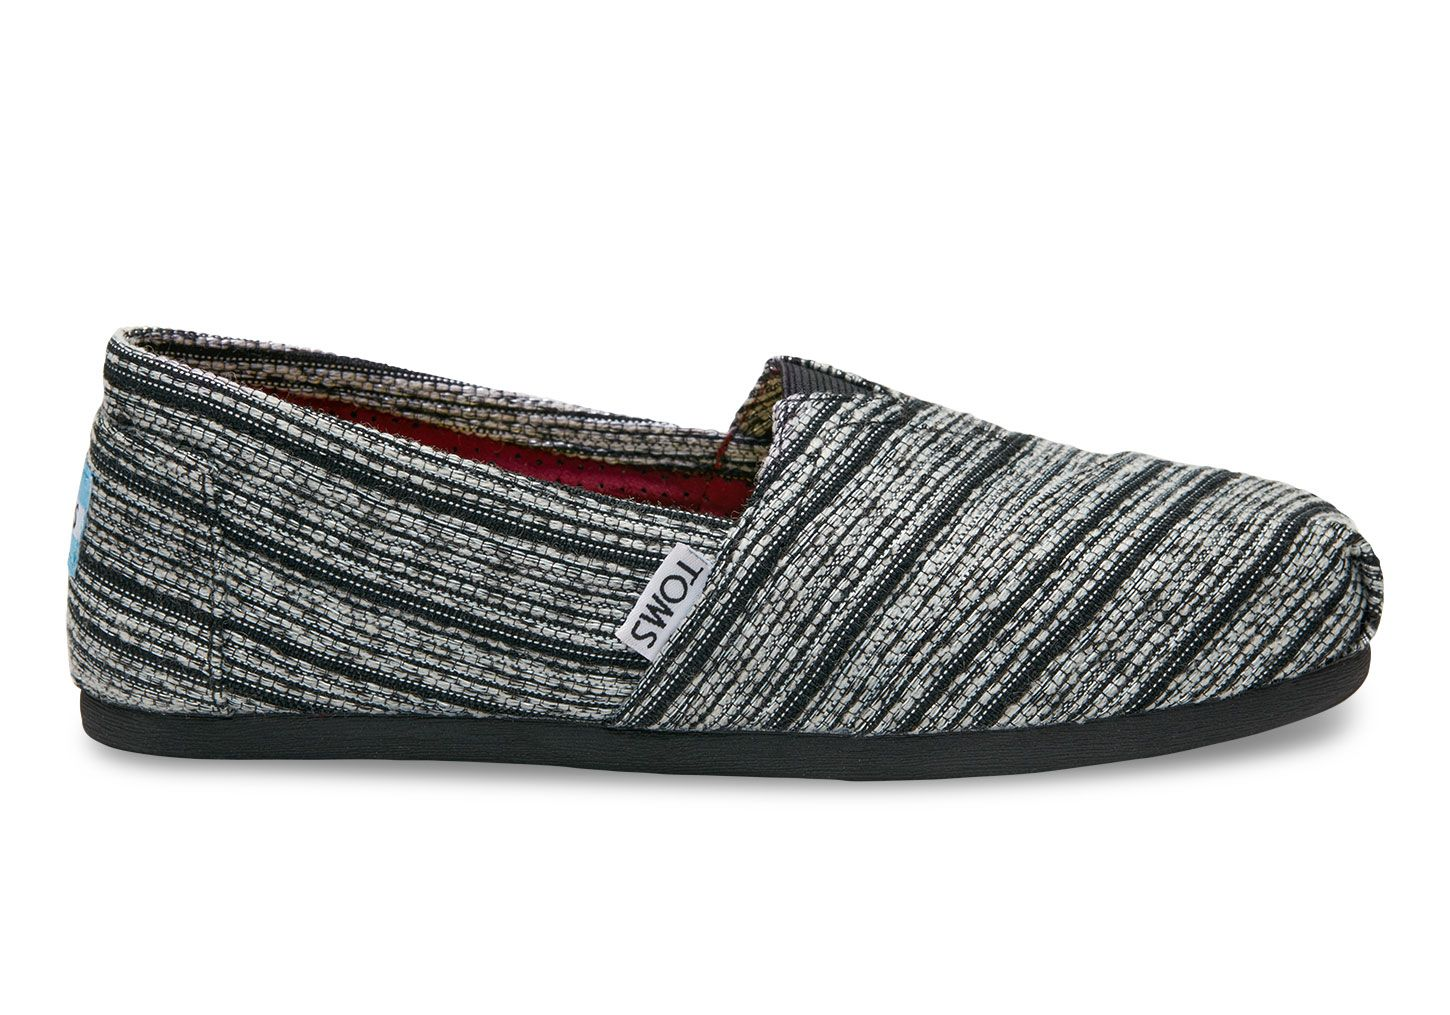 Make A Statement In This Alpargata. The Slip-on That